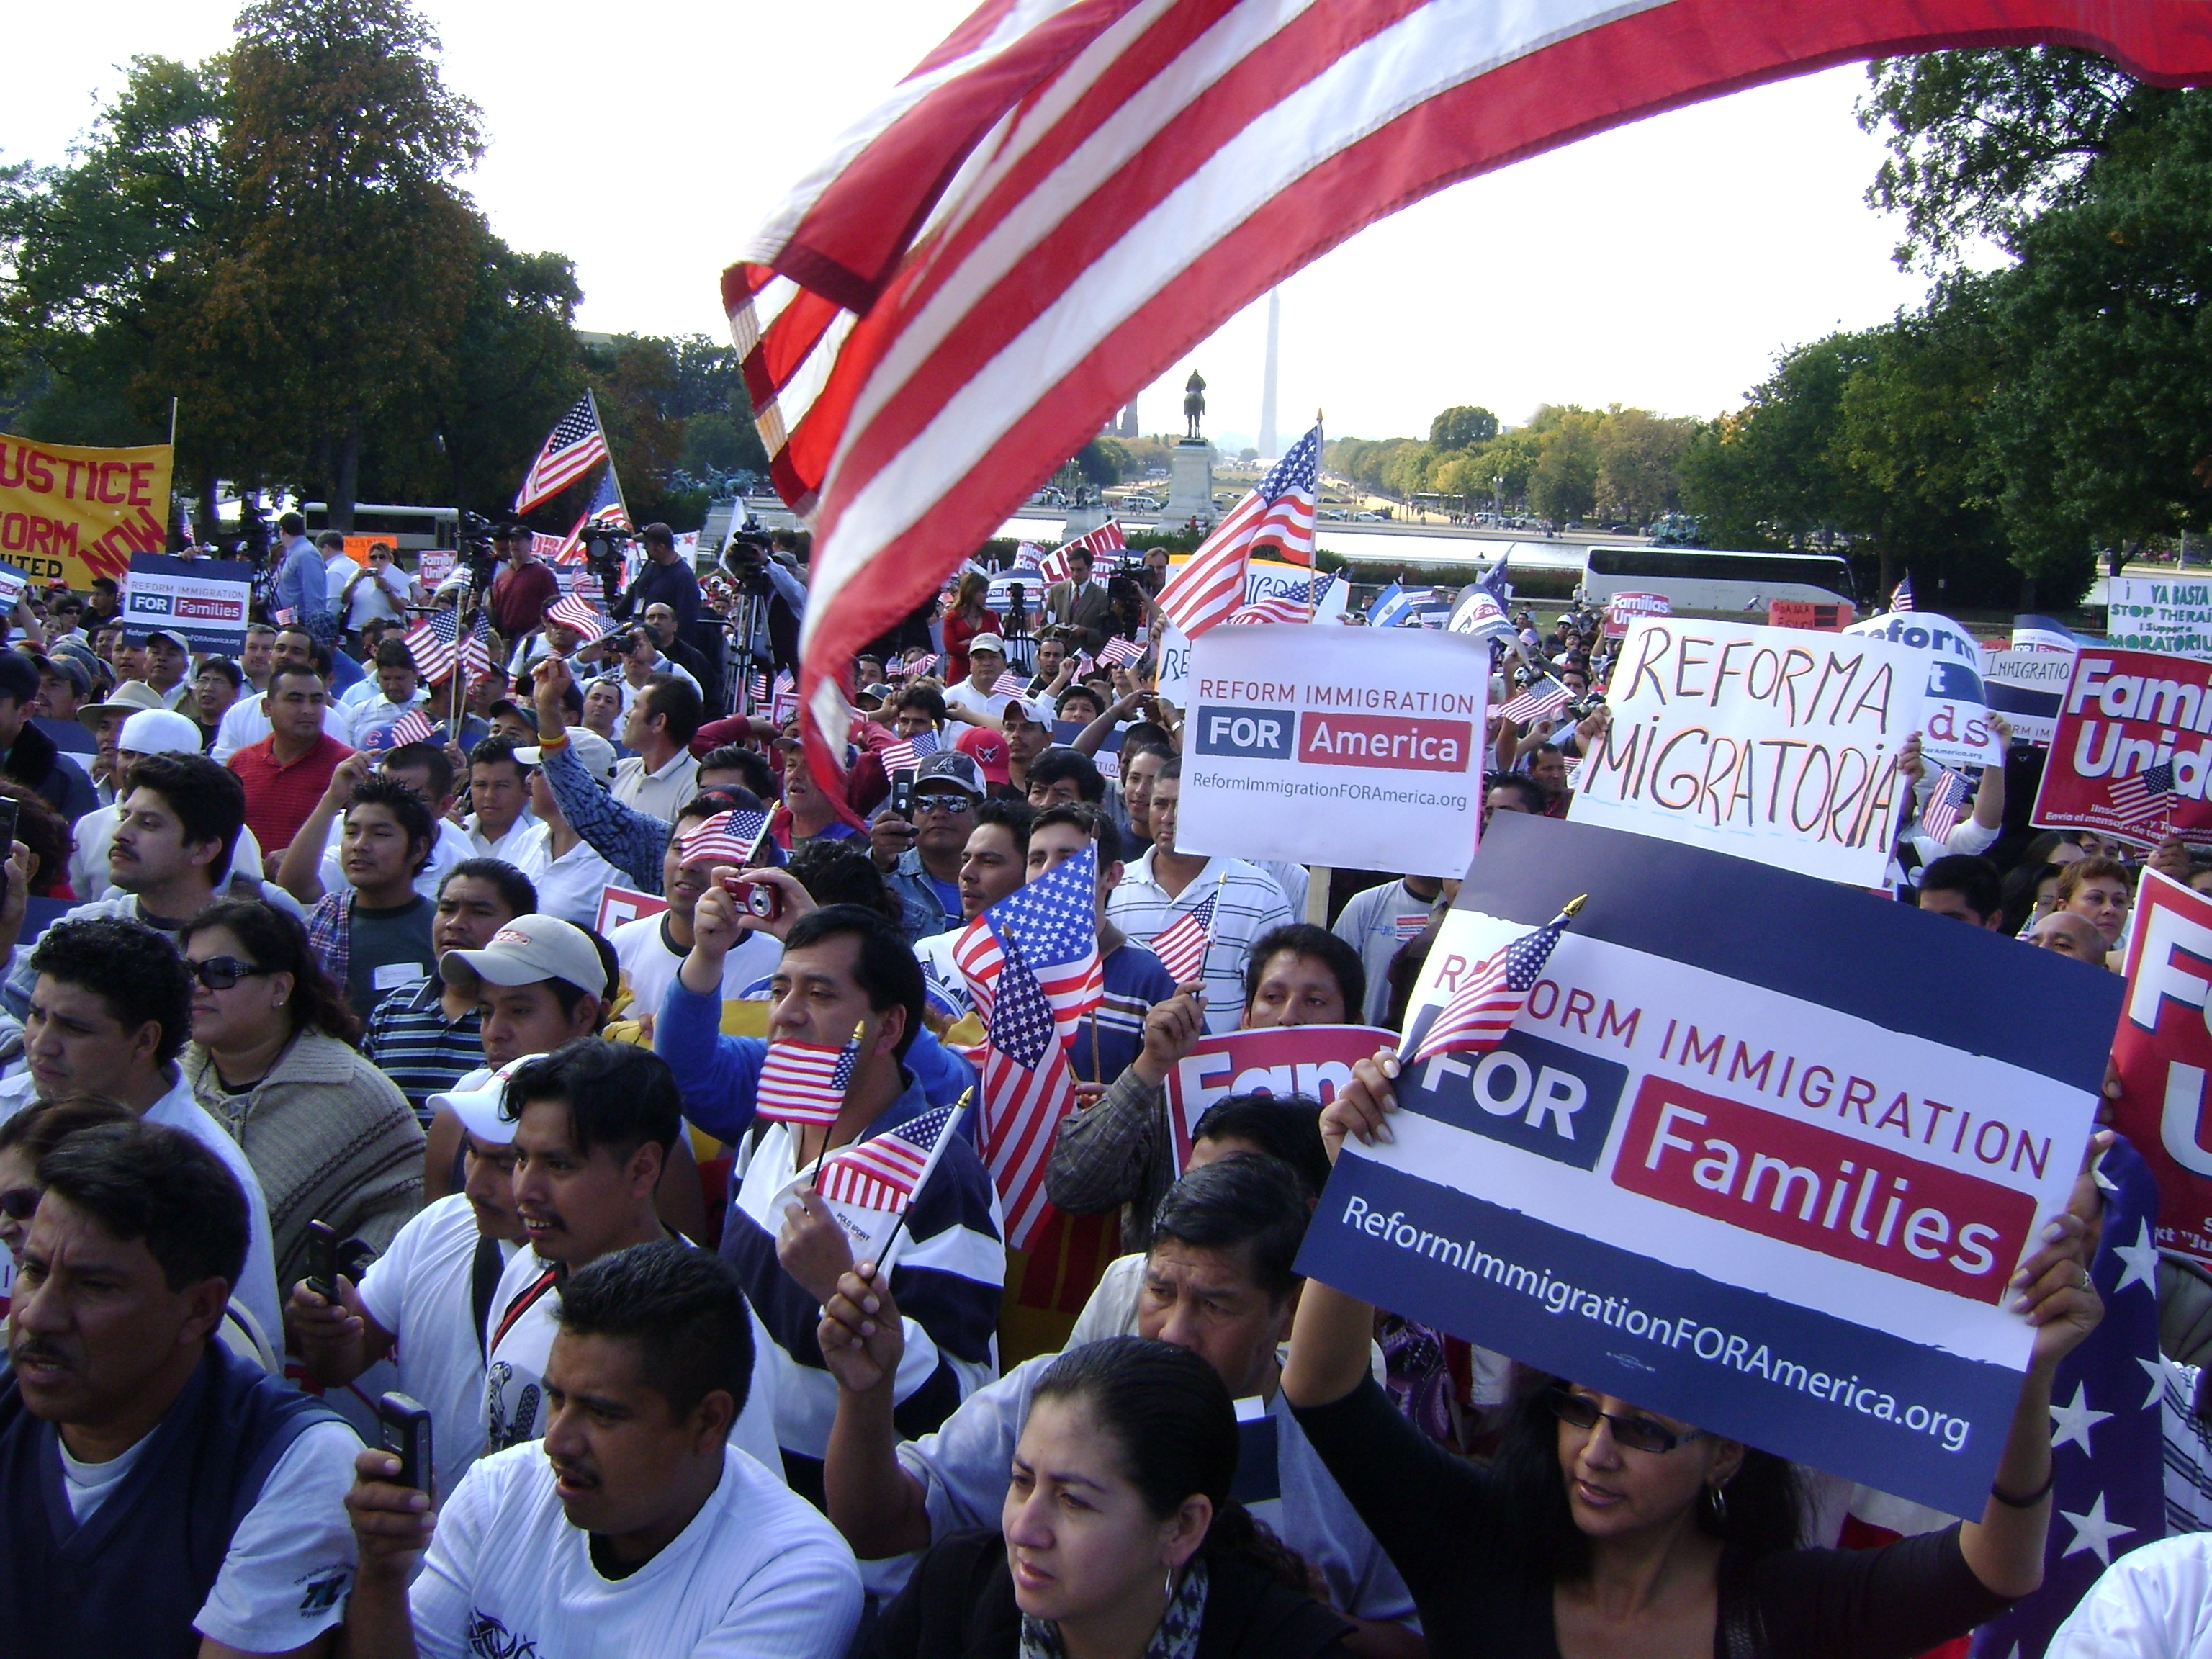 Thousands call for immigration reform on the West Lawn of the Capitol.